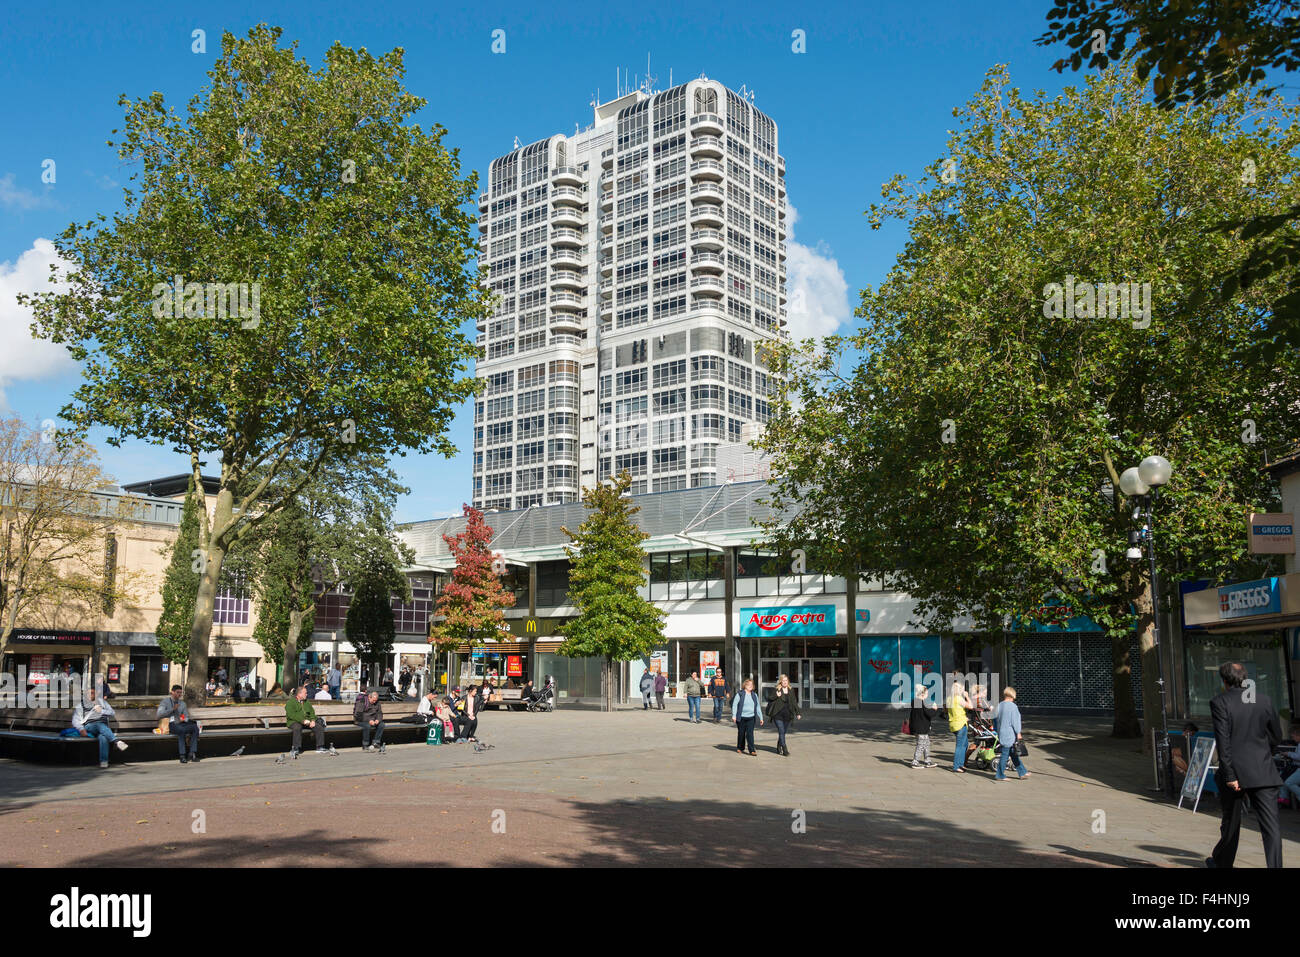 The David Murray John Tower from Canal Walk, Swindon, Wiltshire, England, United Kingdom - Stock Image